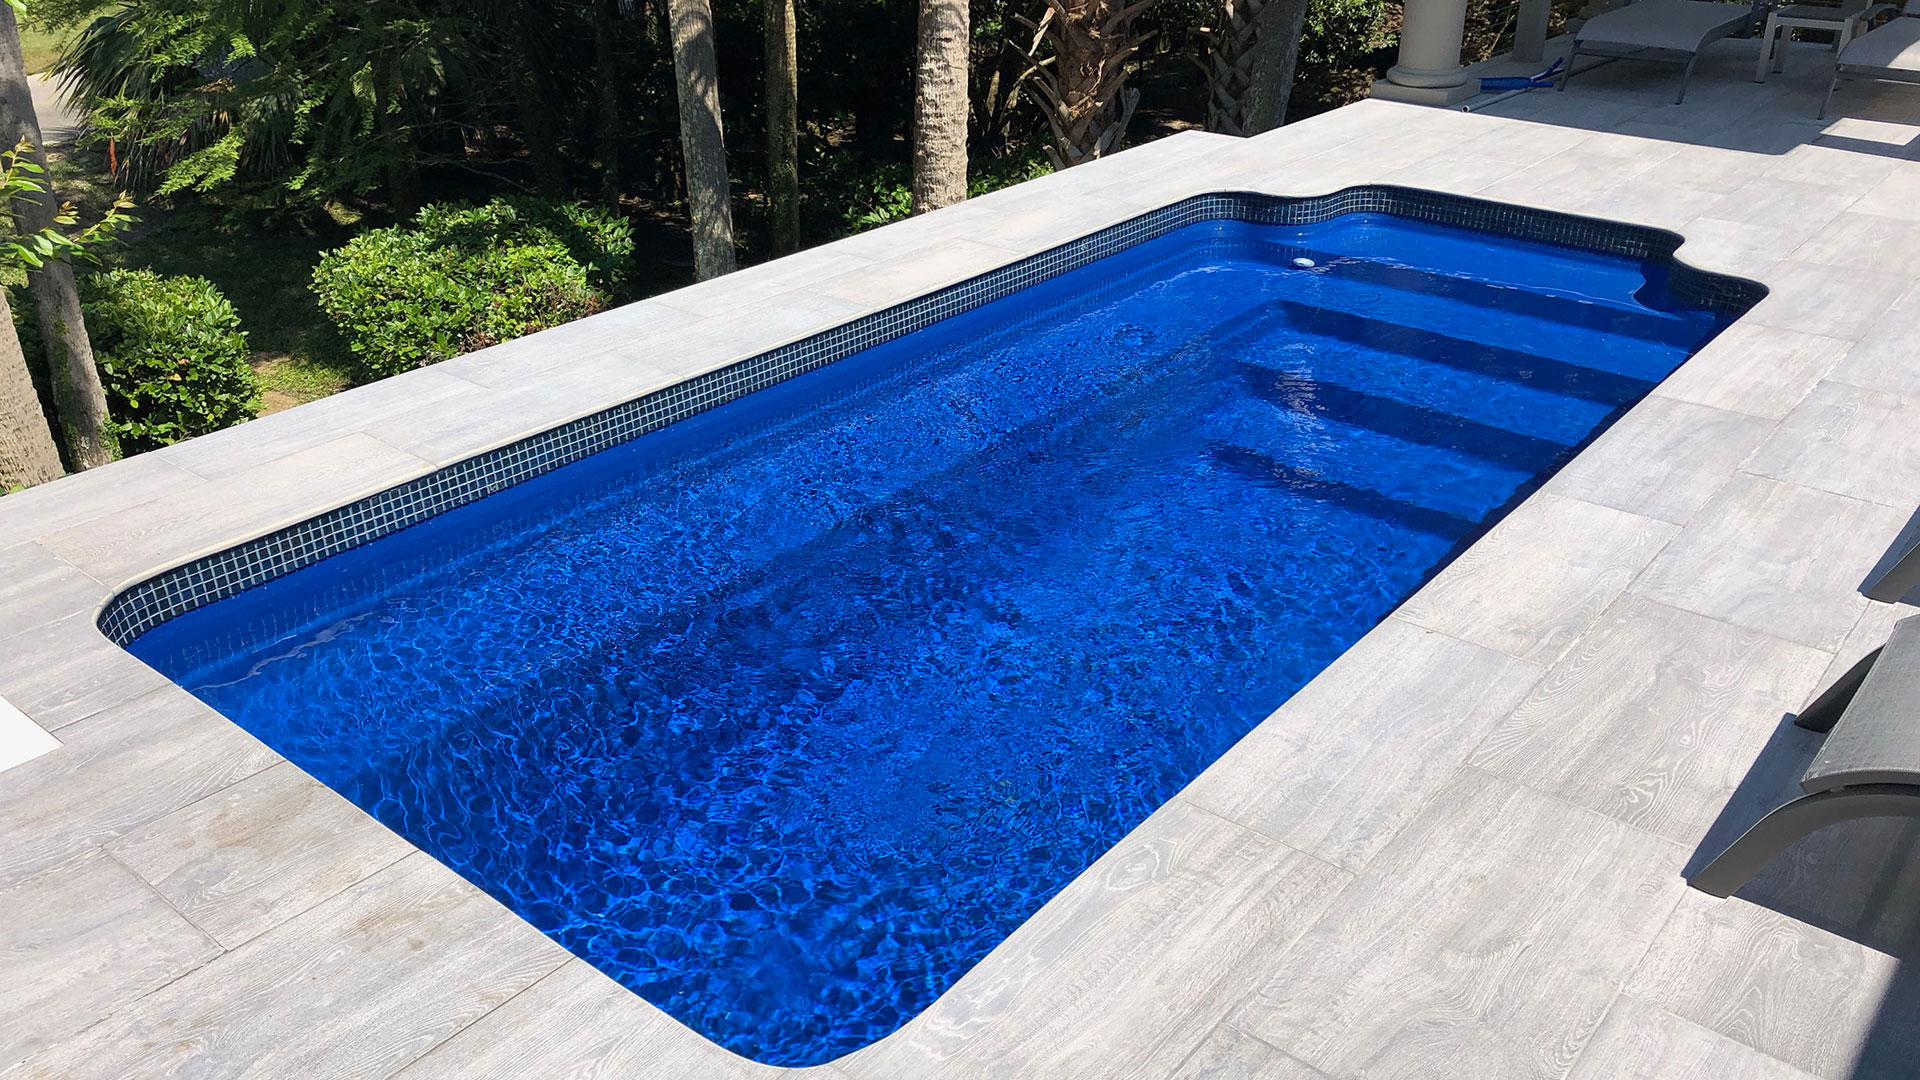 Alaglas Pools Capri fiberglass swimming pool in sapphire